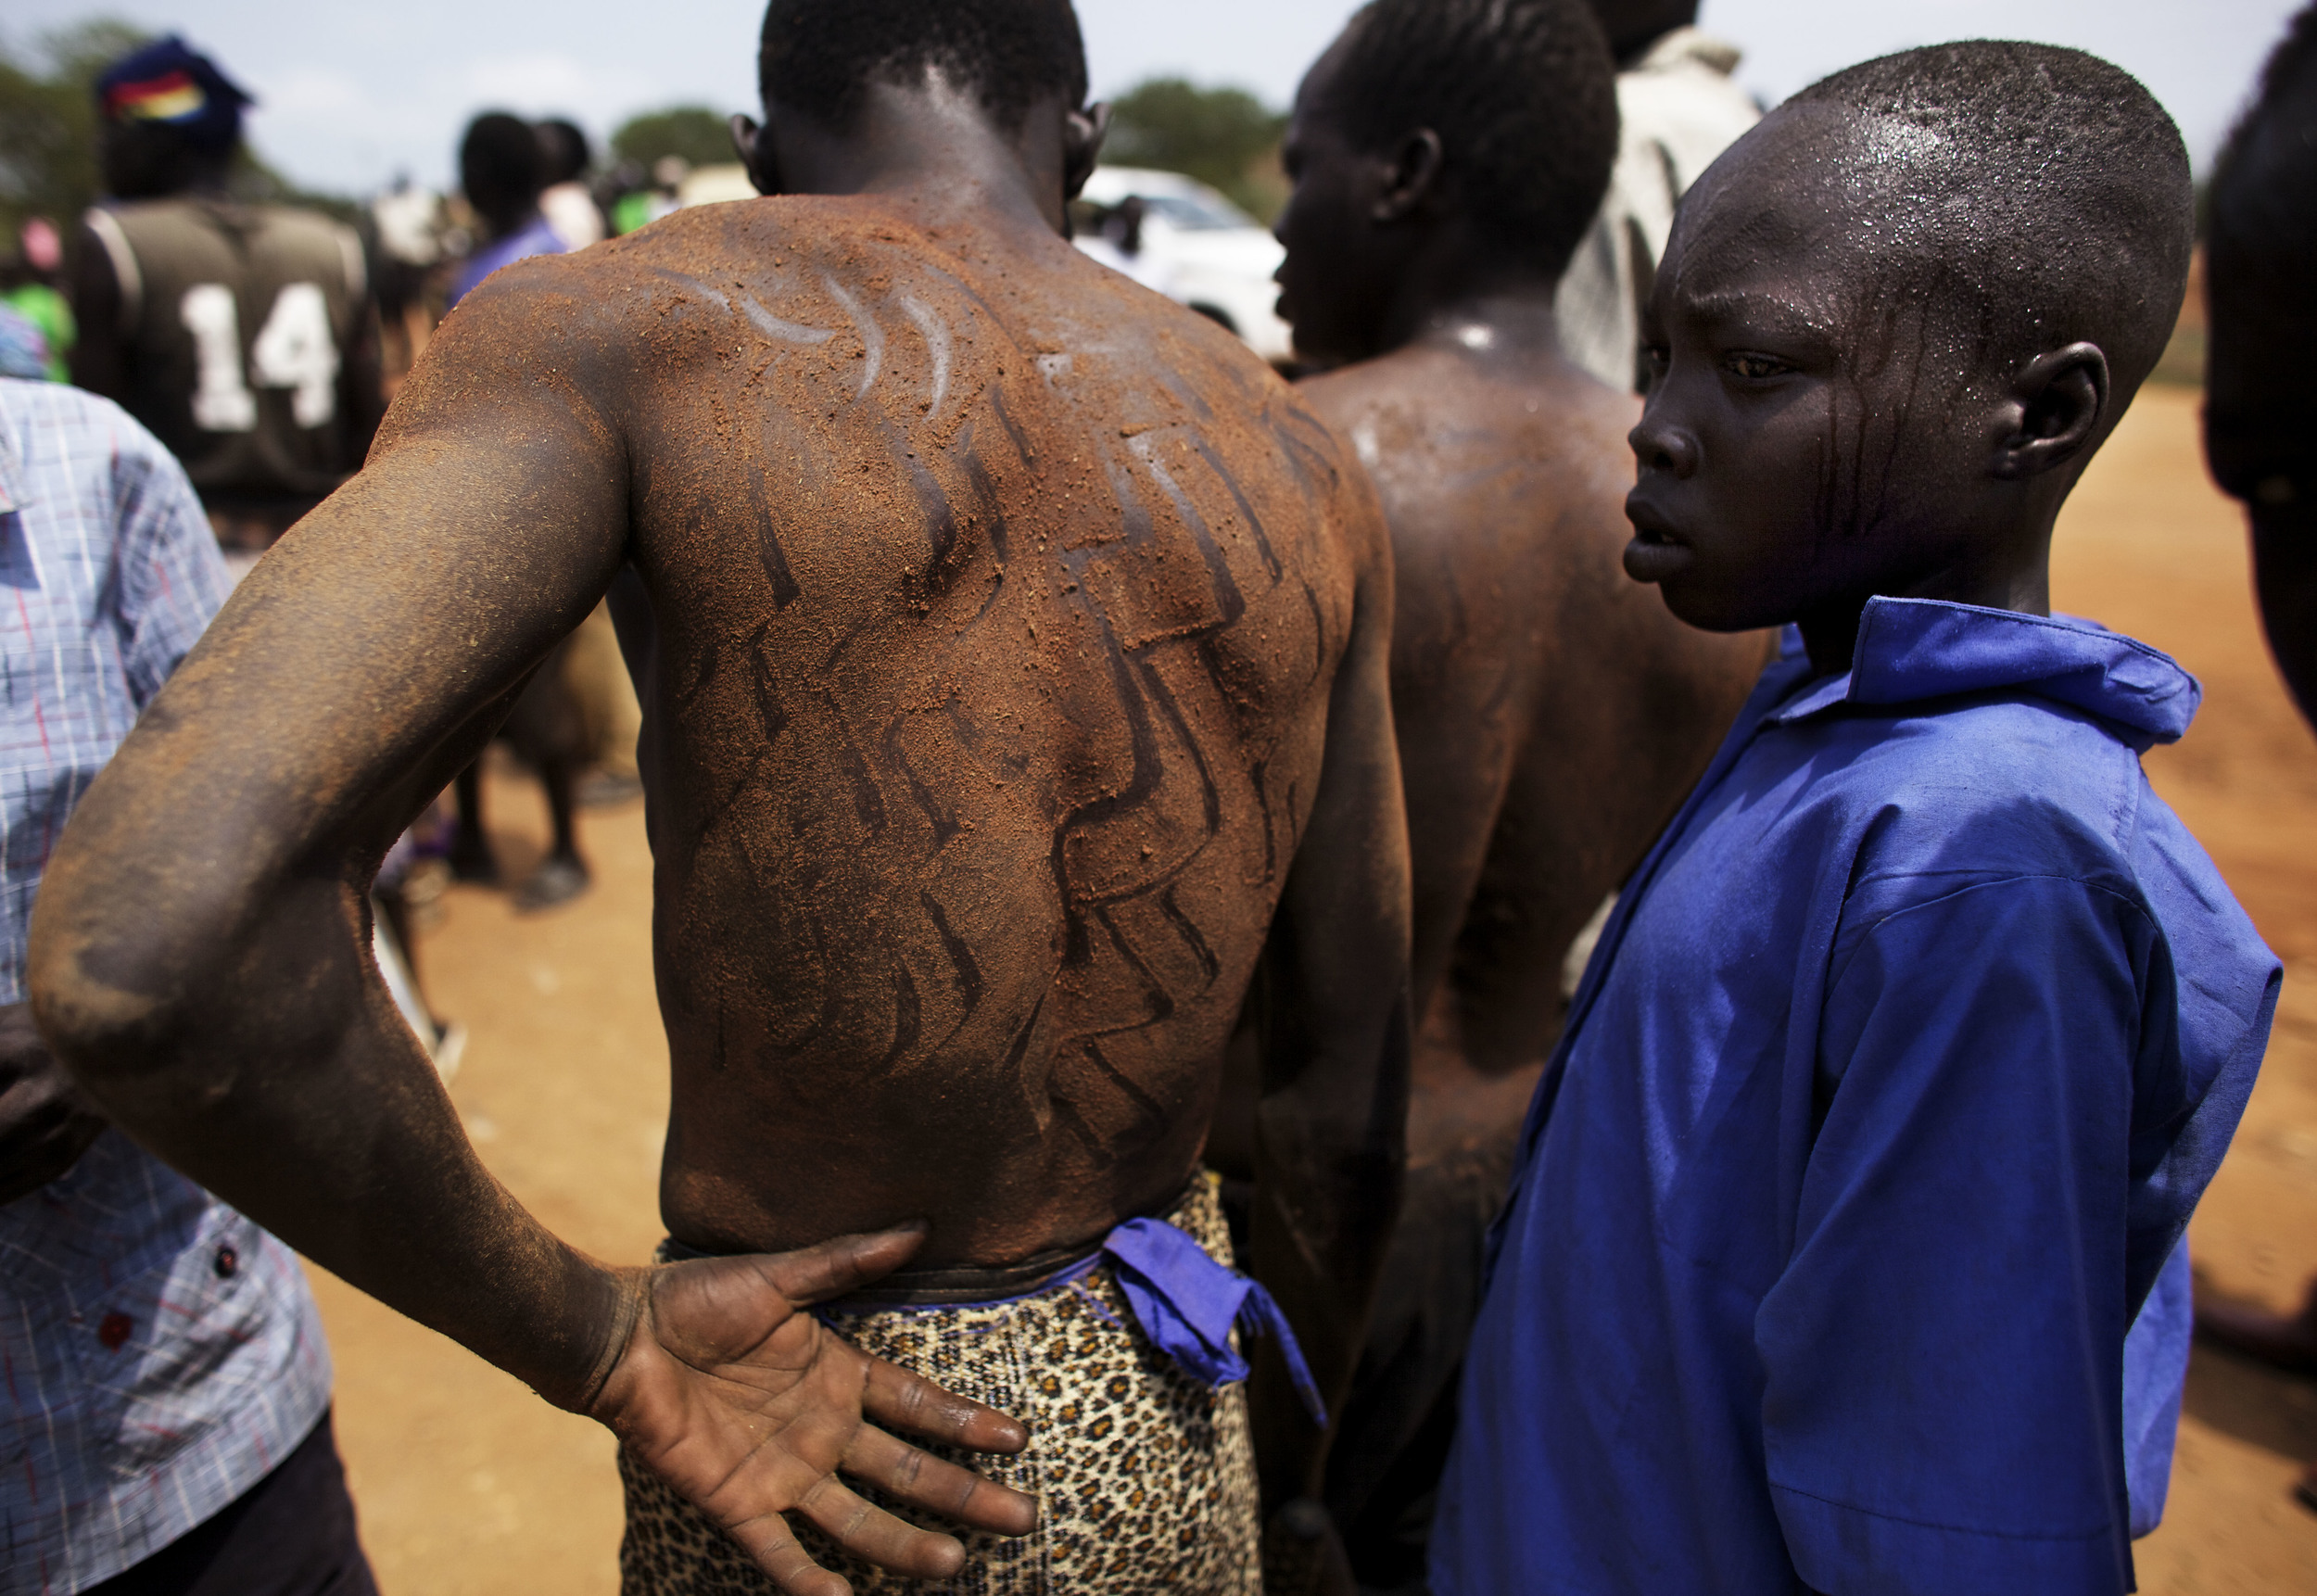 Youths gather following rehearsals for independence celebrations in Juba, southern Sudan, Tuesday, July 5, 2011. South Sudan is set to declare independence from the north on Saturday, July 9. (AP Photo/David Azia)